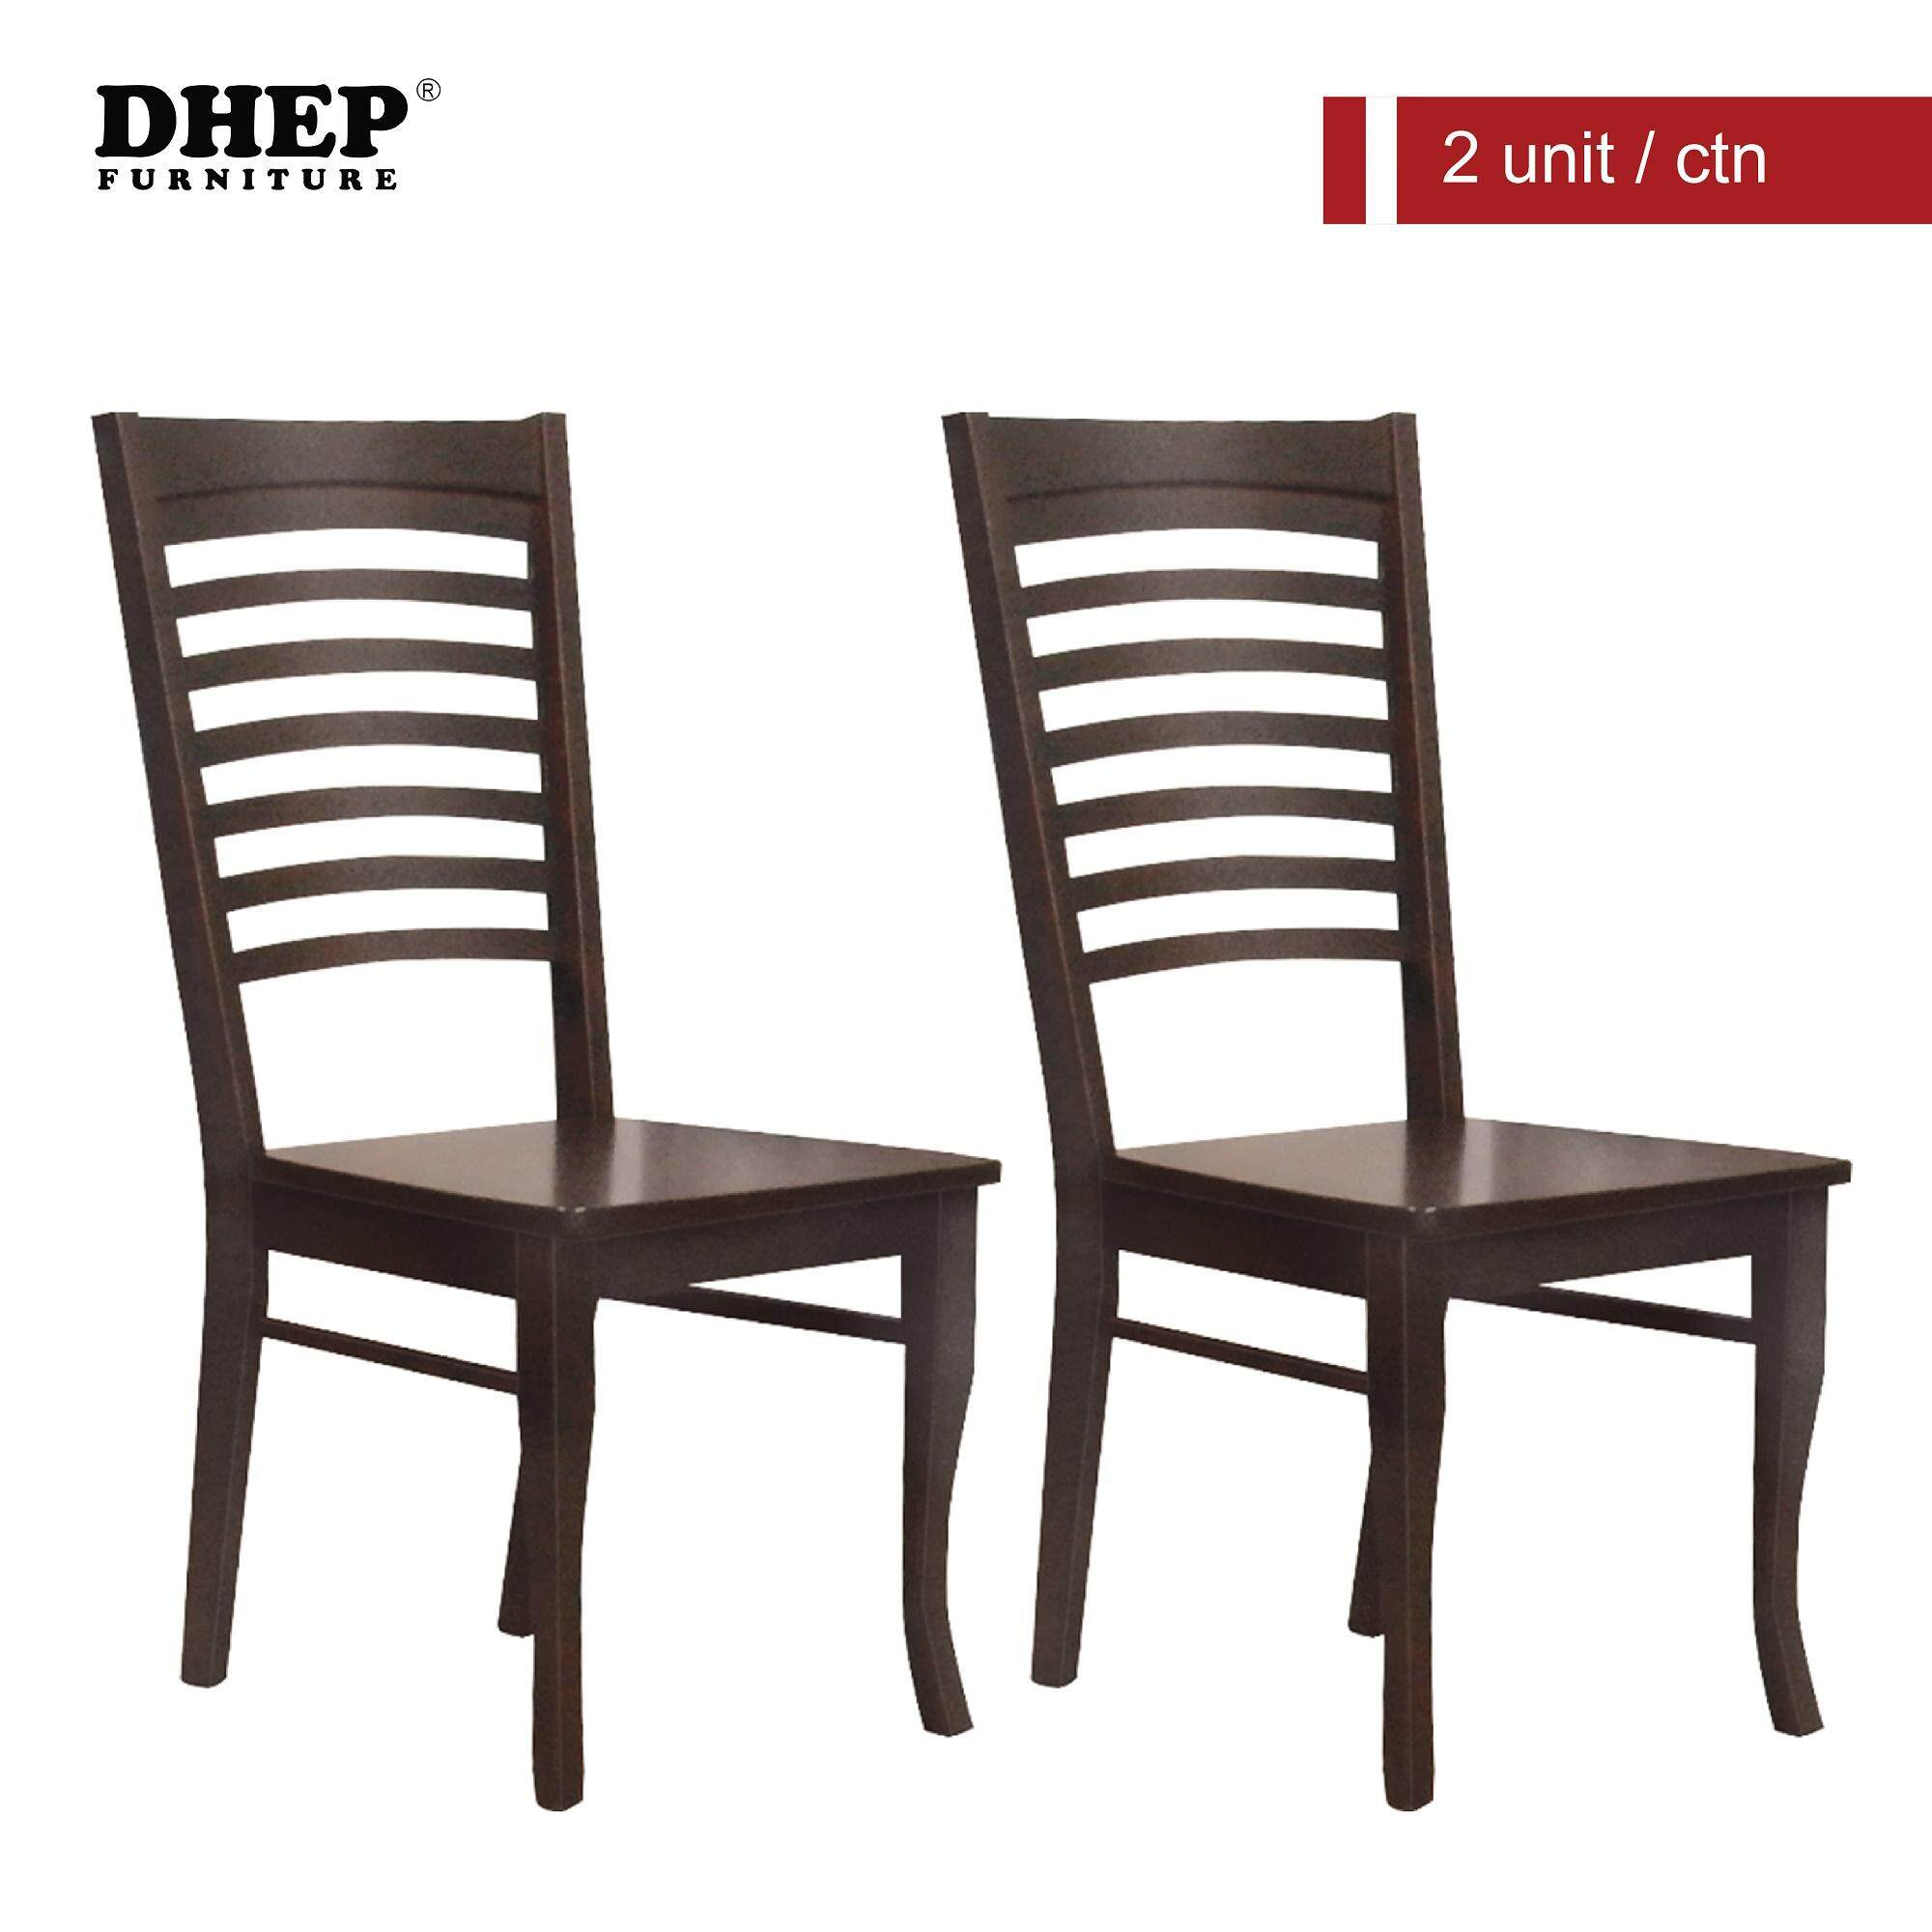 DHEP Furniture Solid wood Dining Chair x 2 Pcs (Cappucino)